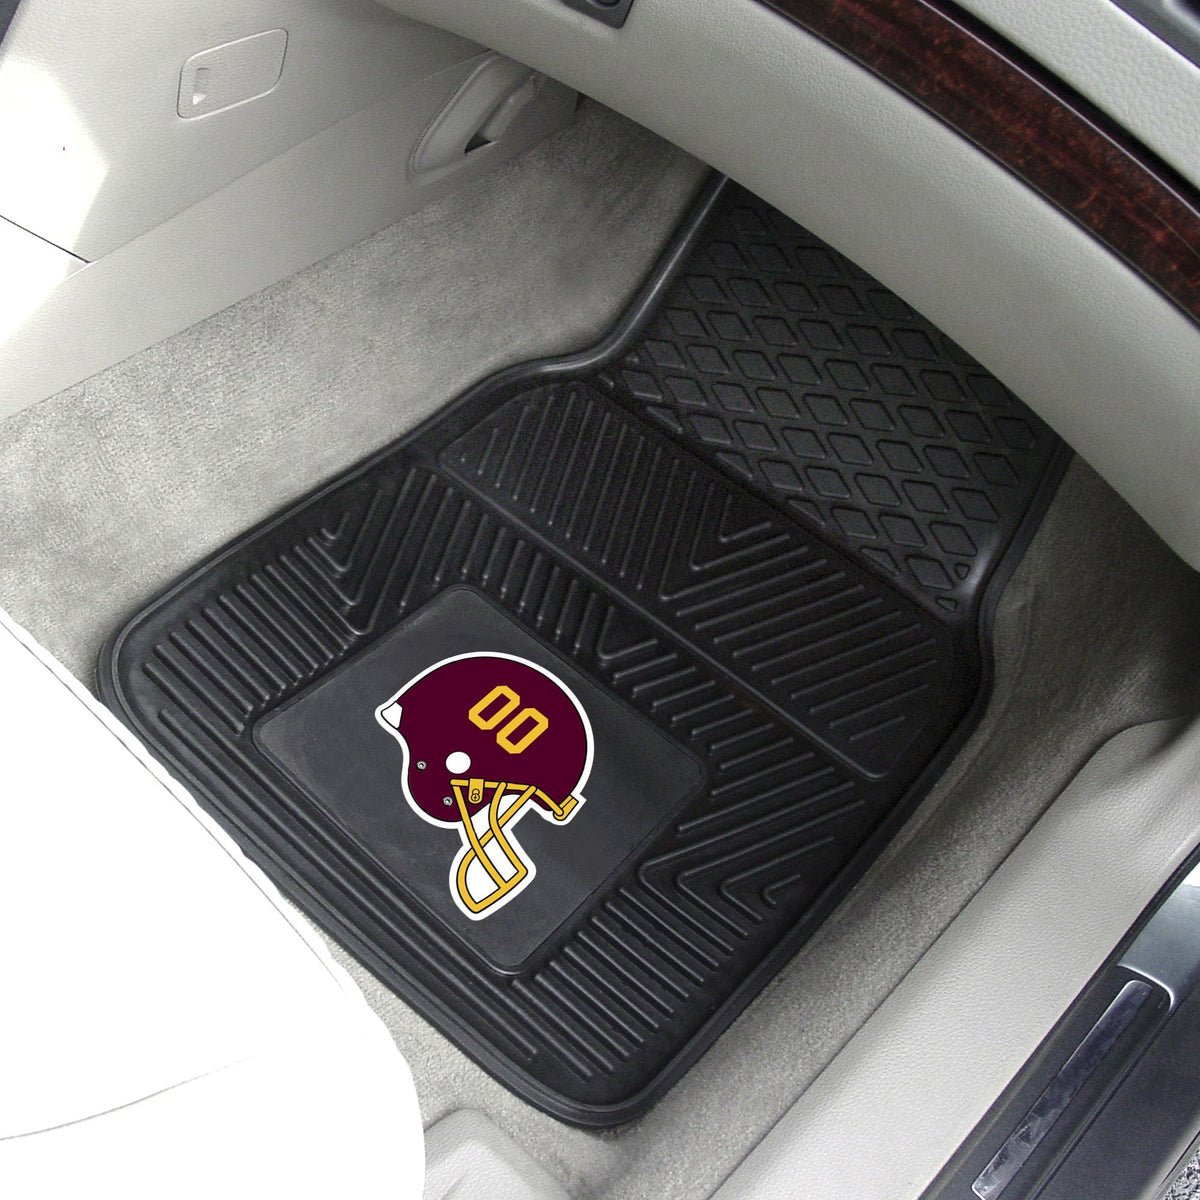 NFL - 2-pc Vinyl Car Mat Set NFL Mats, Front Car Mats, 2-pc Vinyl Car Mat Set, NFL, Auto Fan Mats Washington Redskins